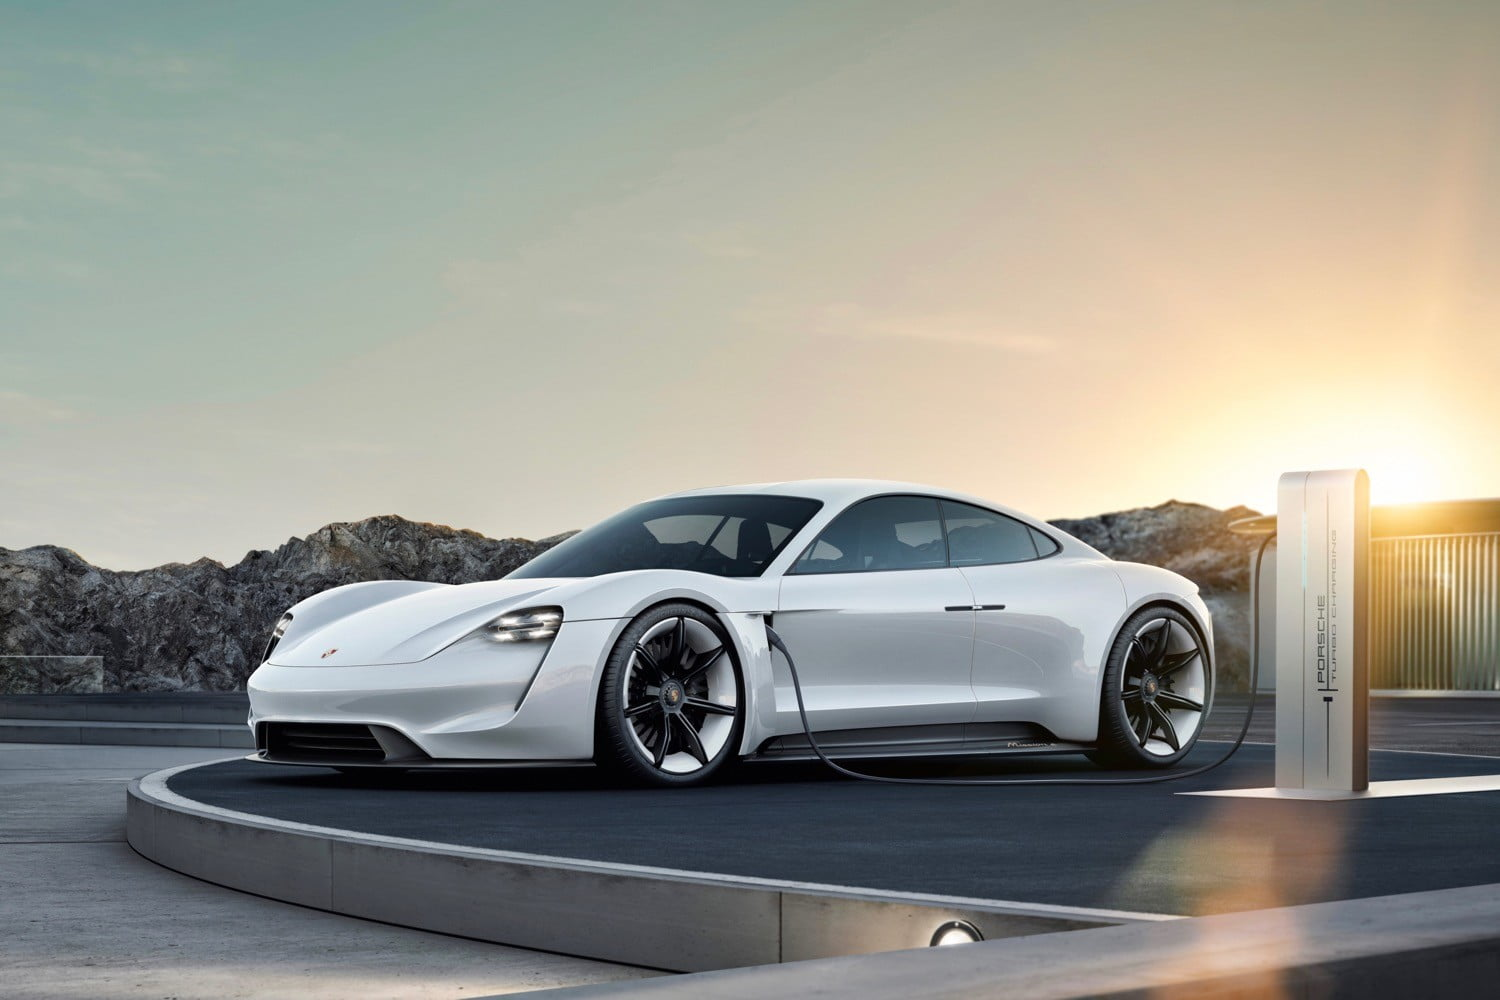 Porsche Taycan Electric Car Attracts More Than 20K Customer